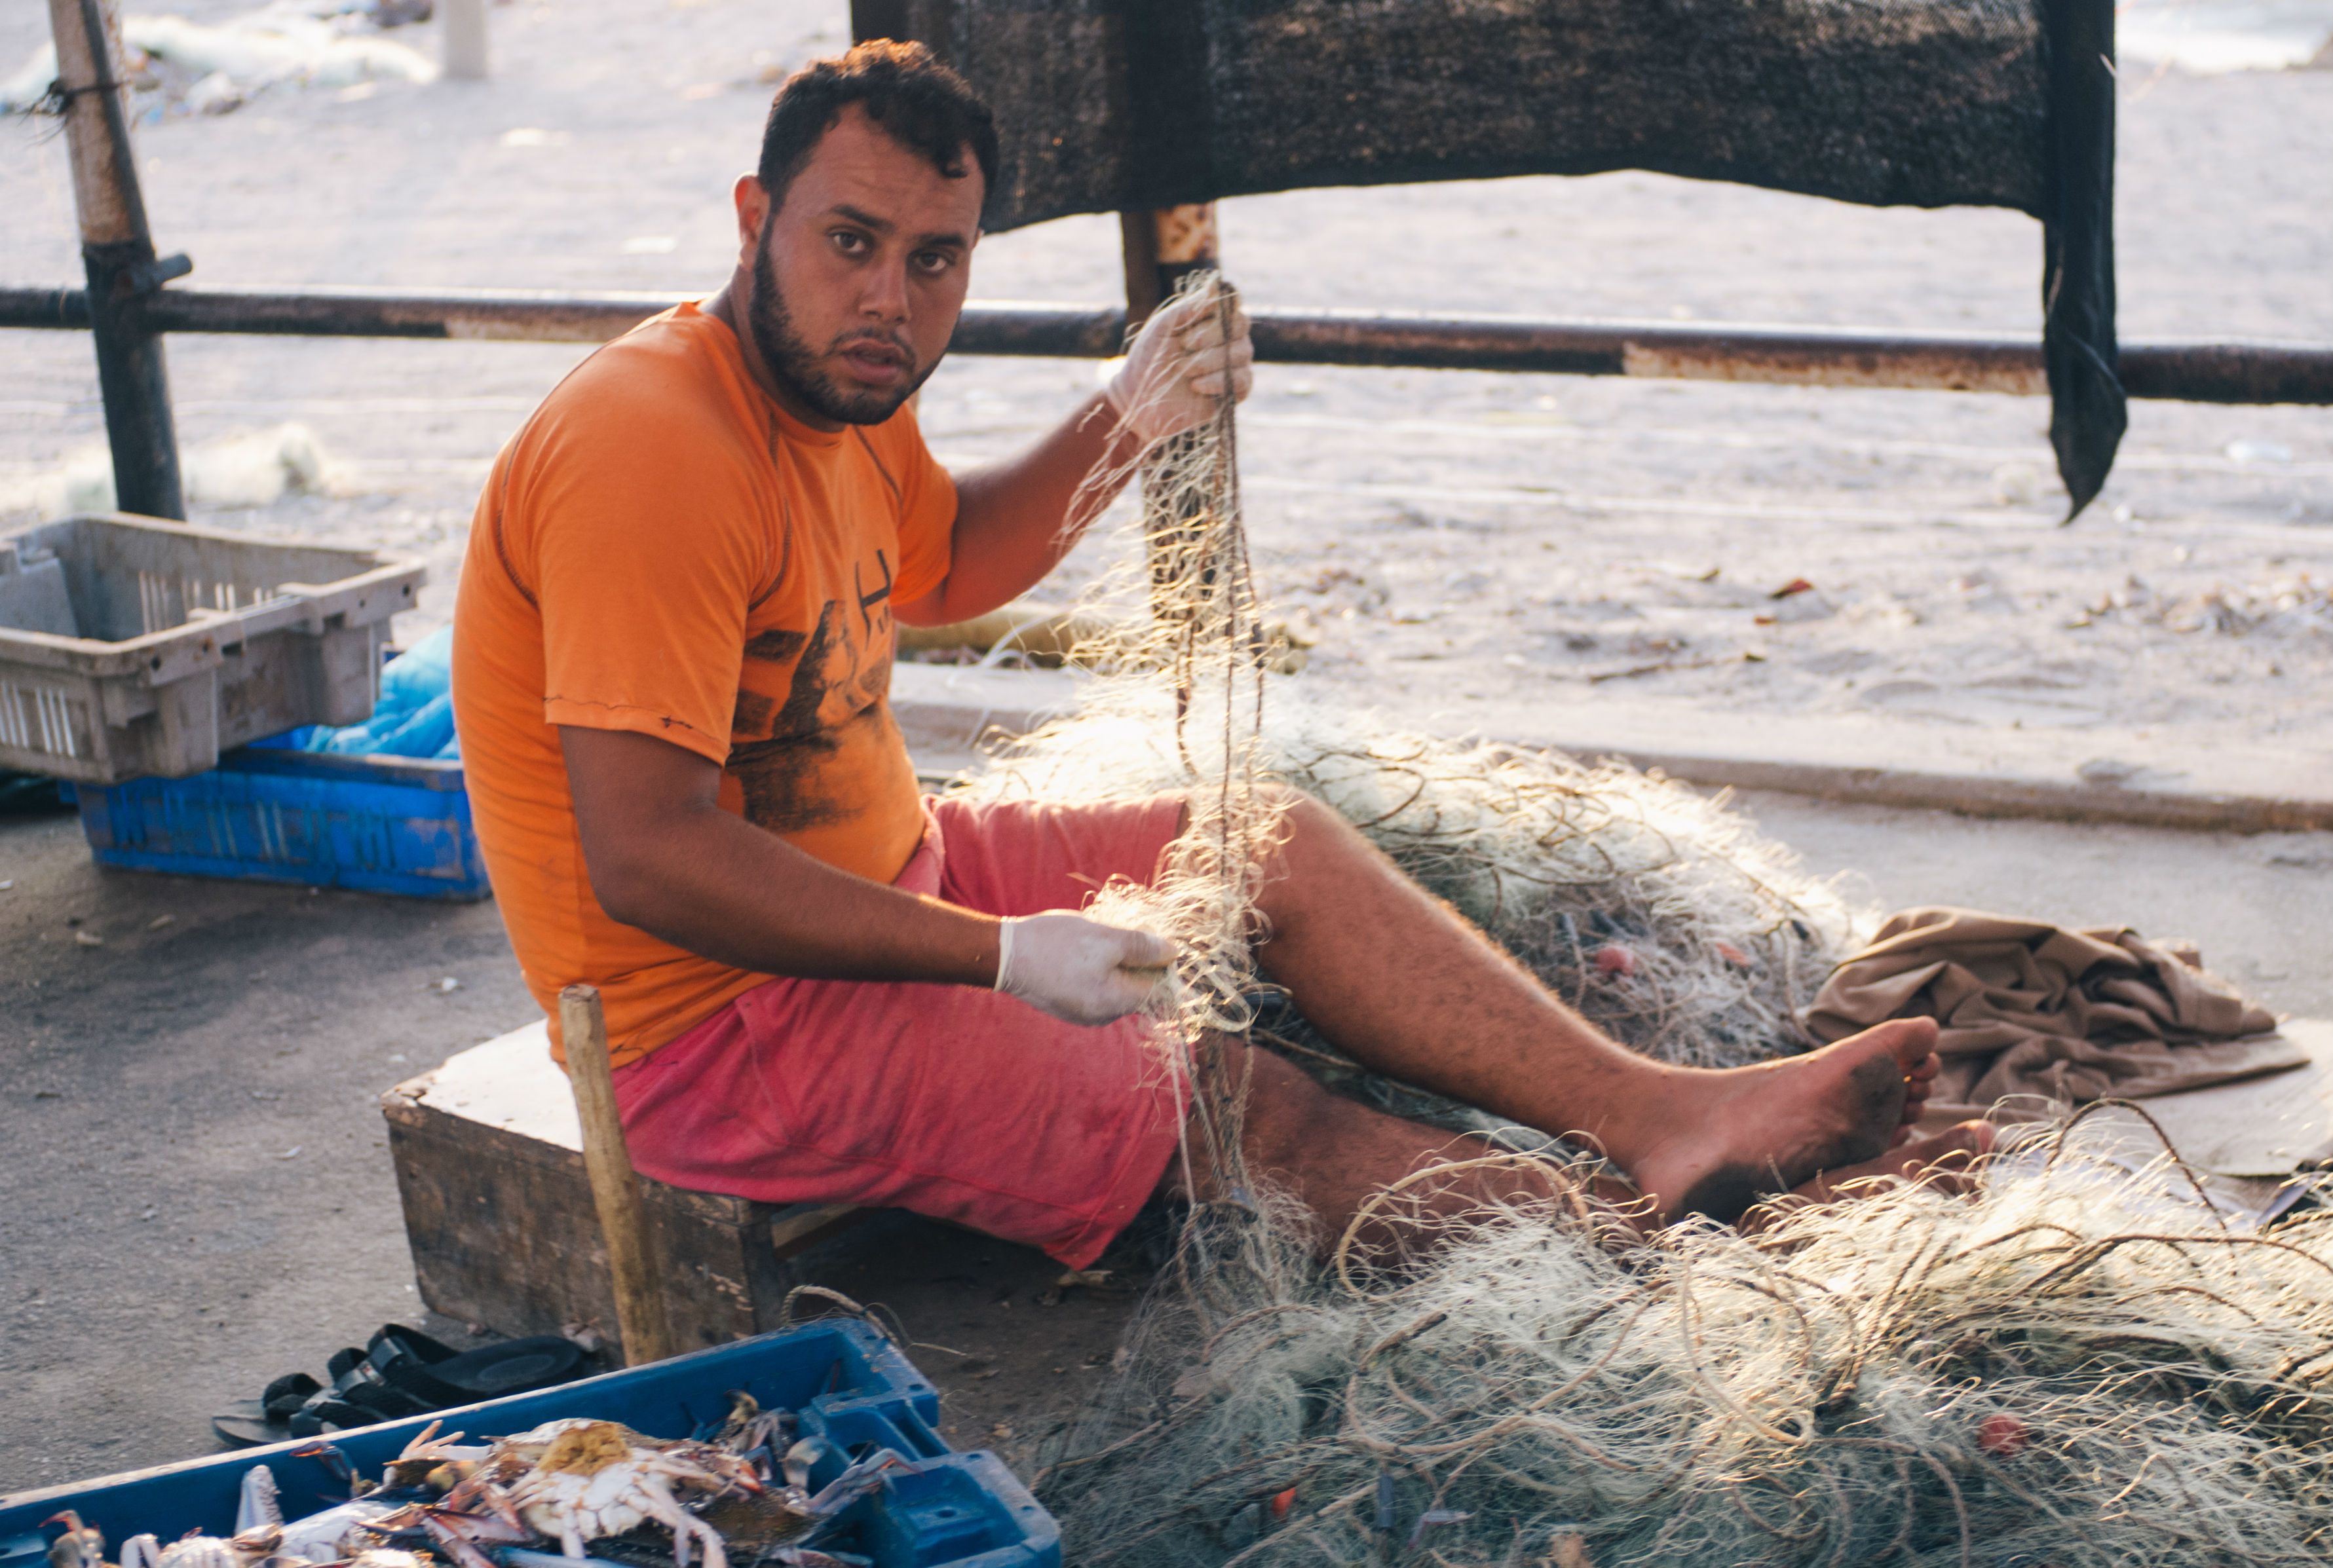 Gaza's connection to the sea may be the strongest in the Shati refugee camp, named after the coast on which it sits. Everywhere there are fishermen, either preparing to go out to sea or else returning with hauls that they sell on the roadside while they fix their nets